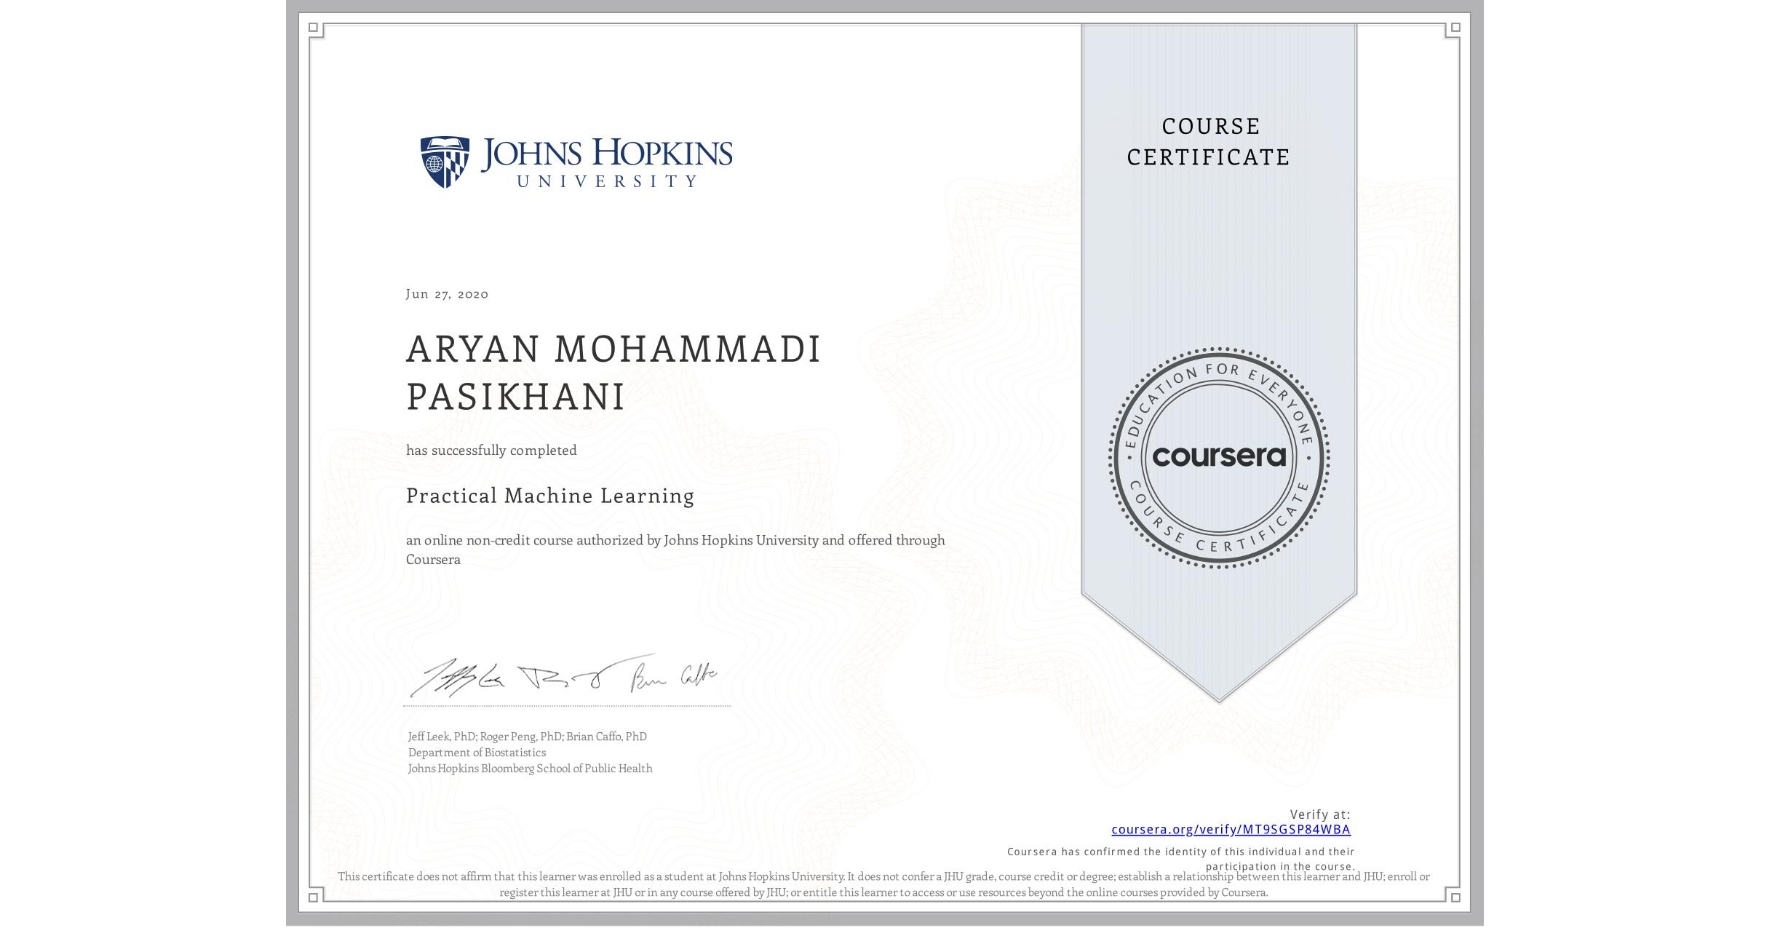 View certificate for ARYAN MOHAMMADI PASIKHANI, Practical Machine Learning, an online non-credit course authorized by Johns Hopkins University and offered through Coursera